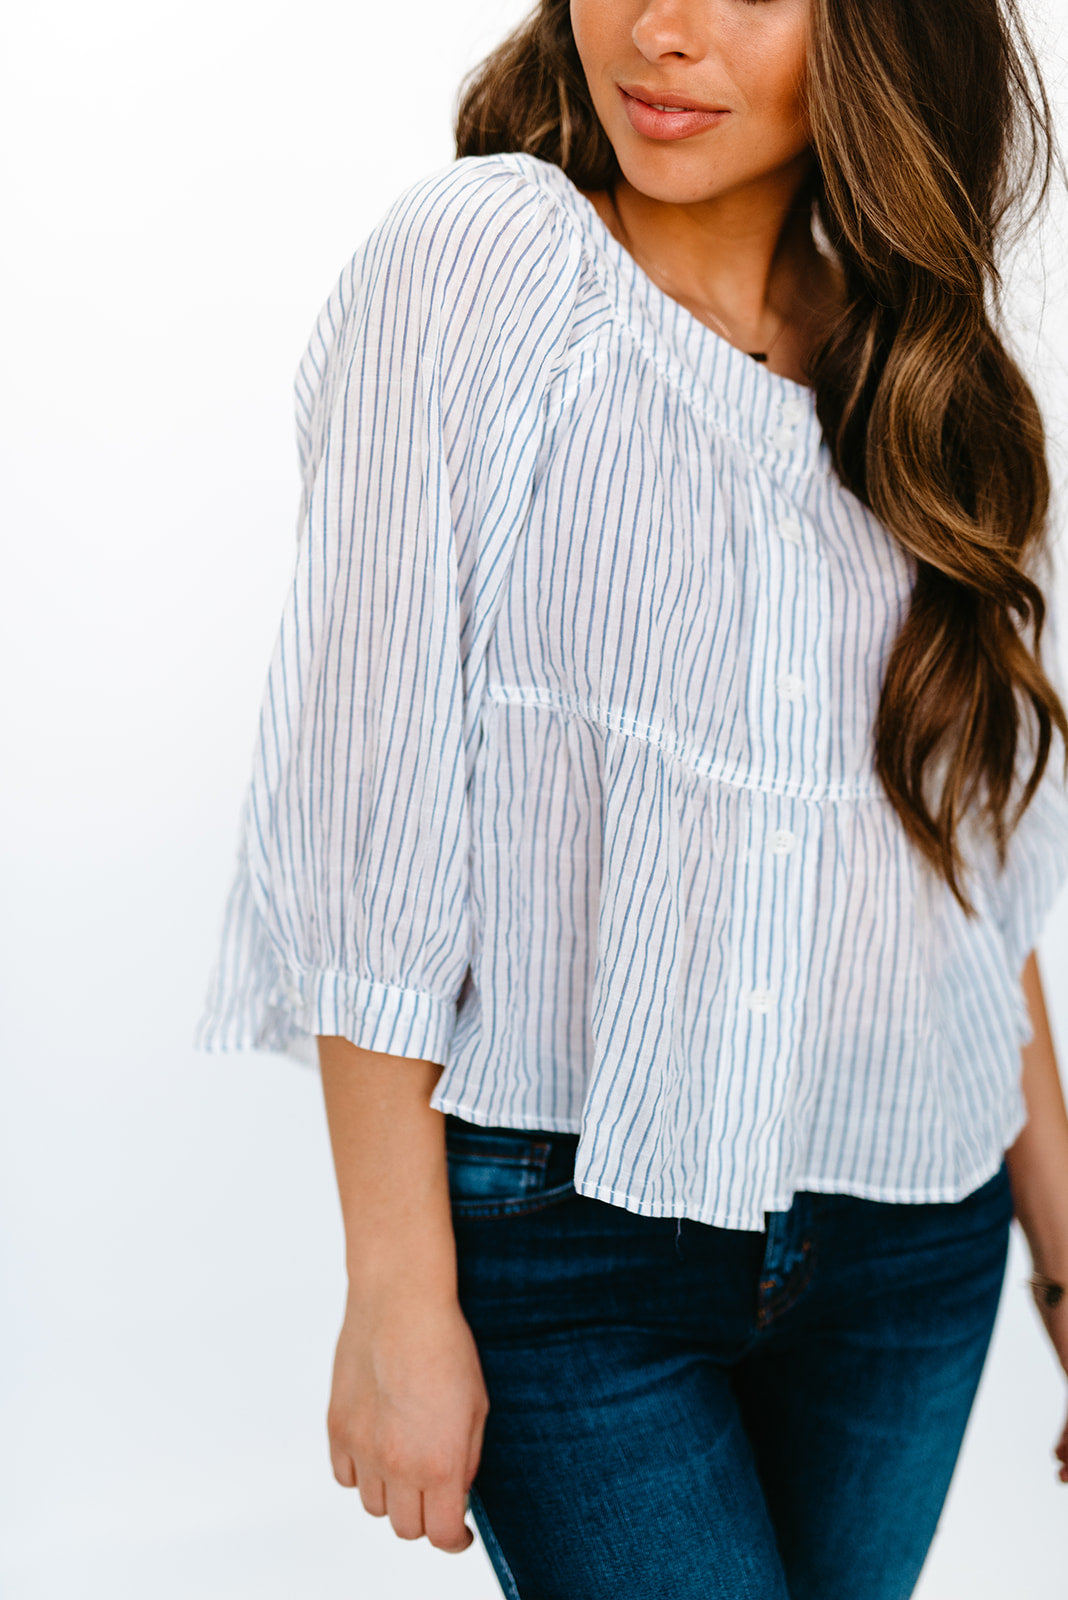 FREE PEOPLE SEA TO SHORE STRIPED TOP IN IVORY